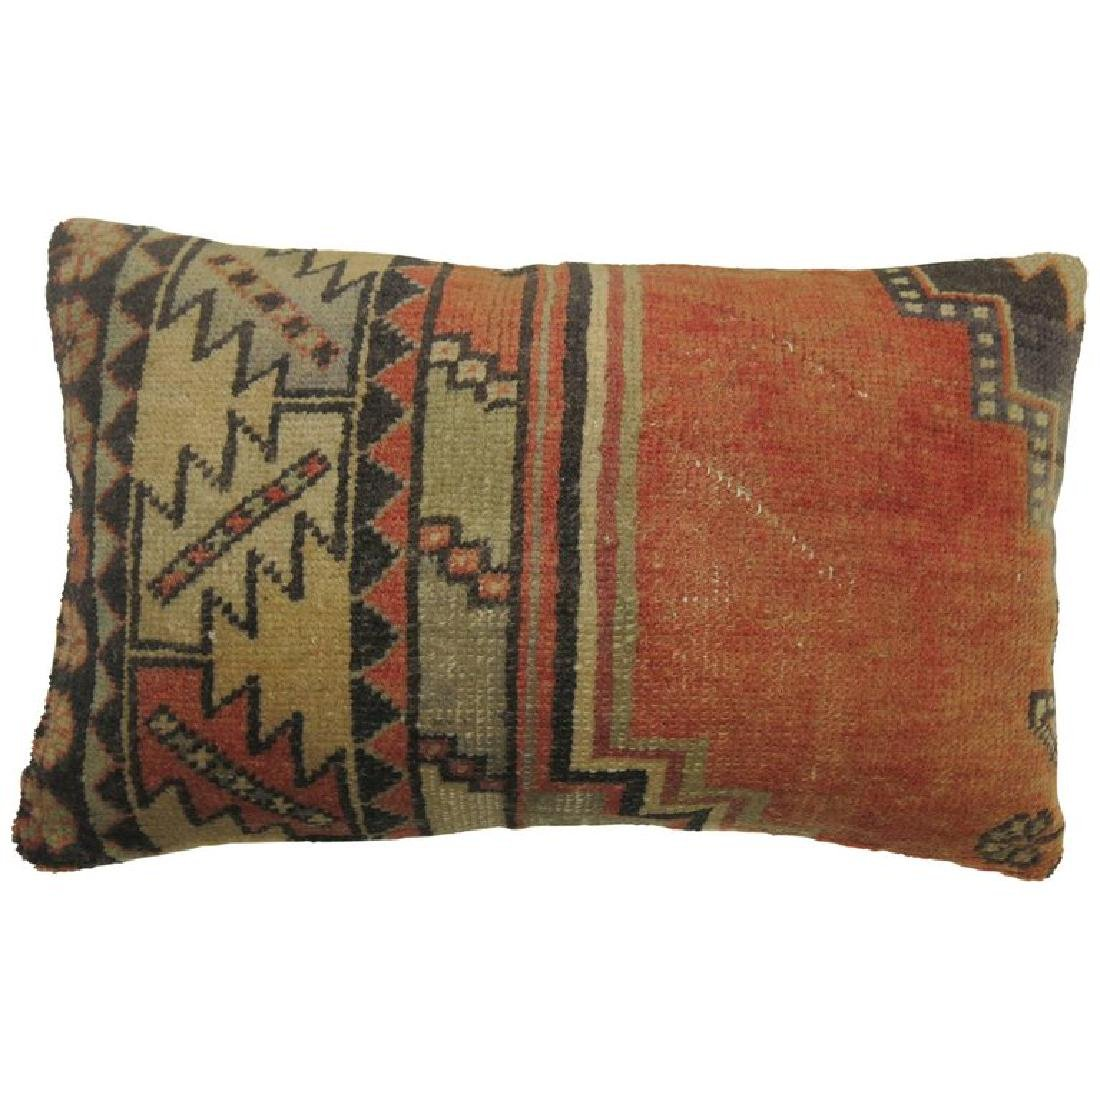 Small Bolster Turkish Rug Pillow 14x1.10x1.10